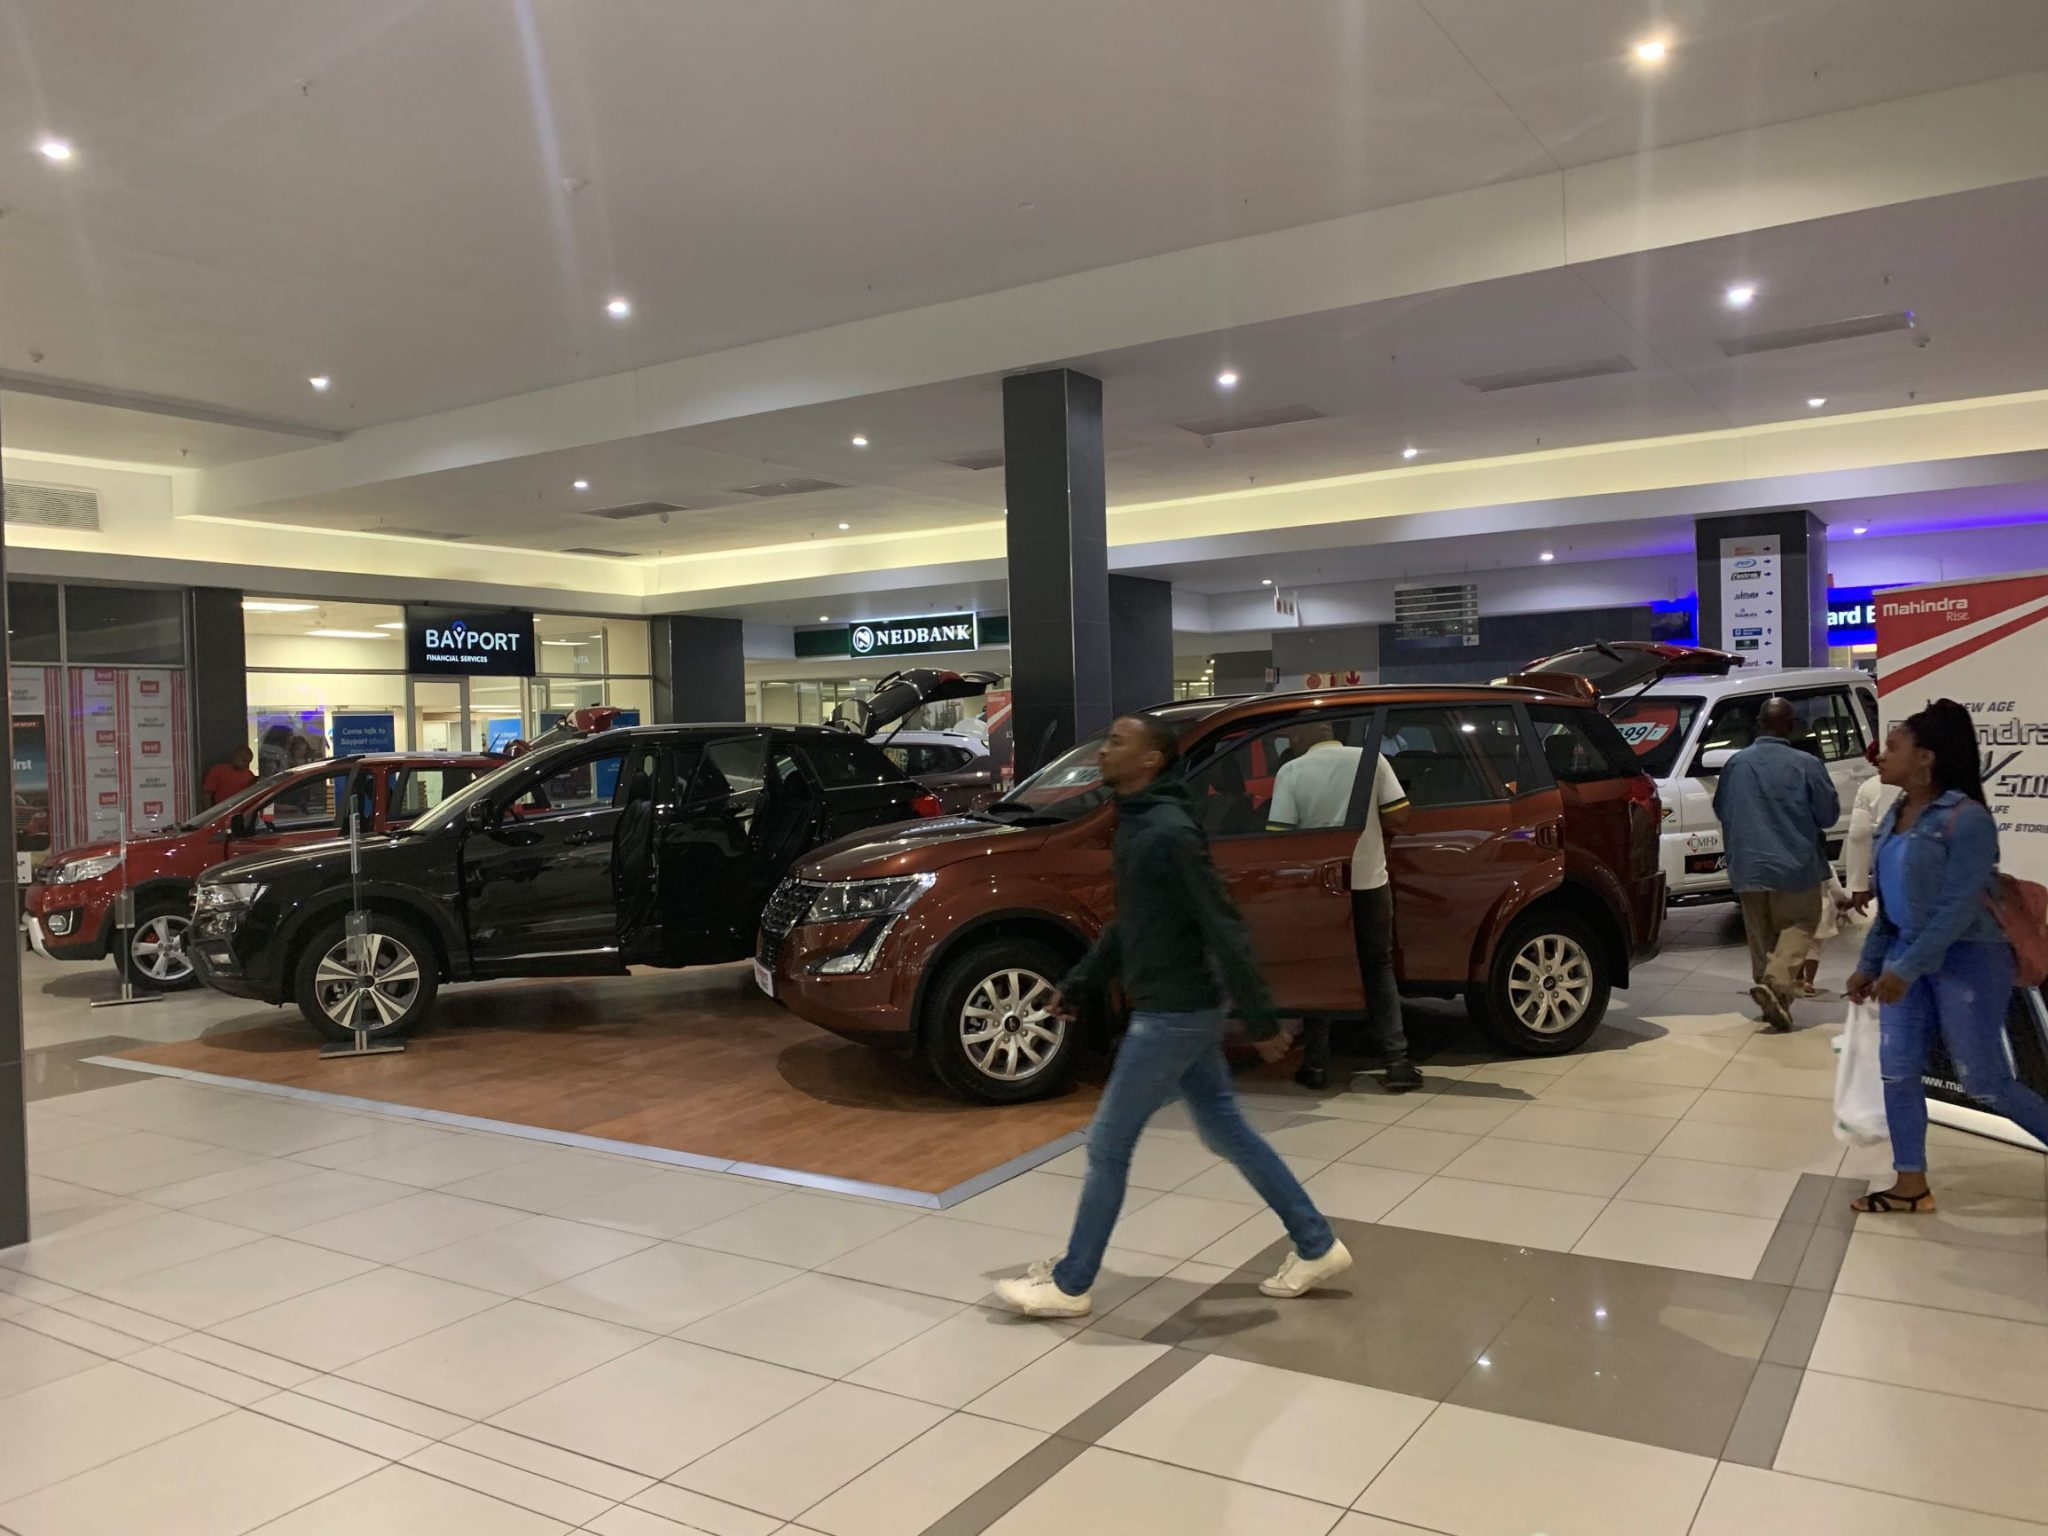 Shopping Centre Car expo in busy mall in Umlazi South Africa